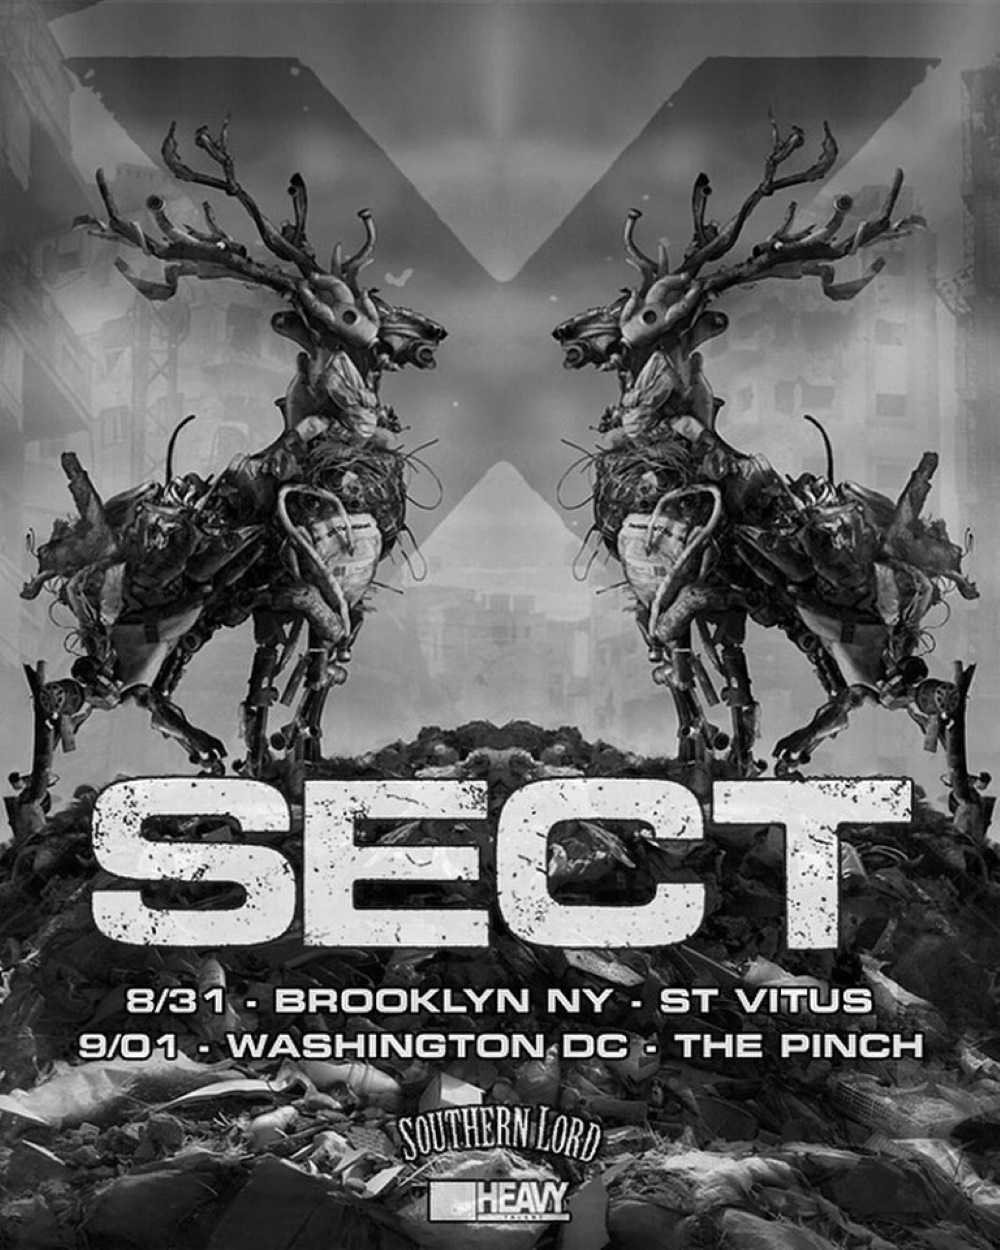 SECT live dates 2019